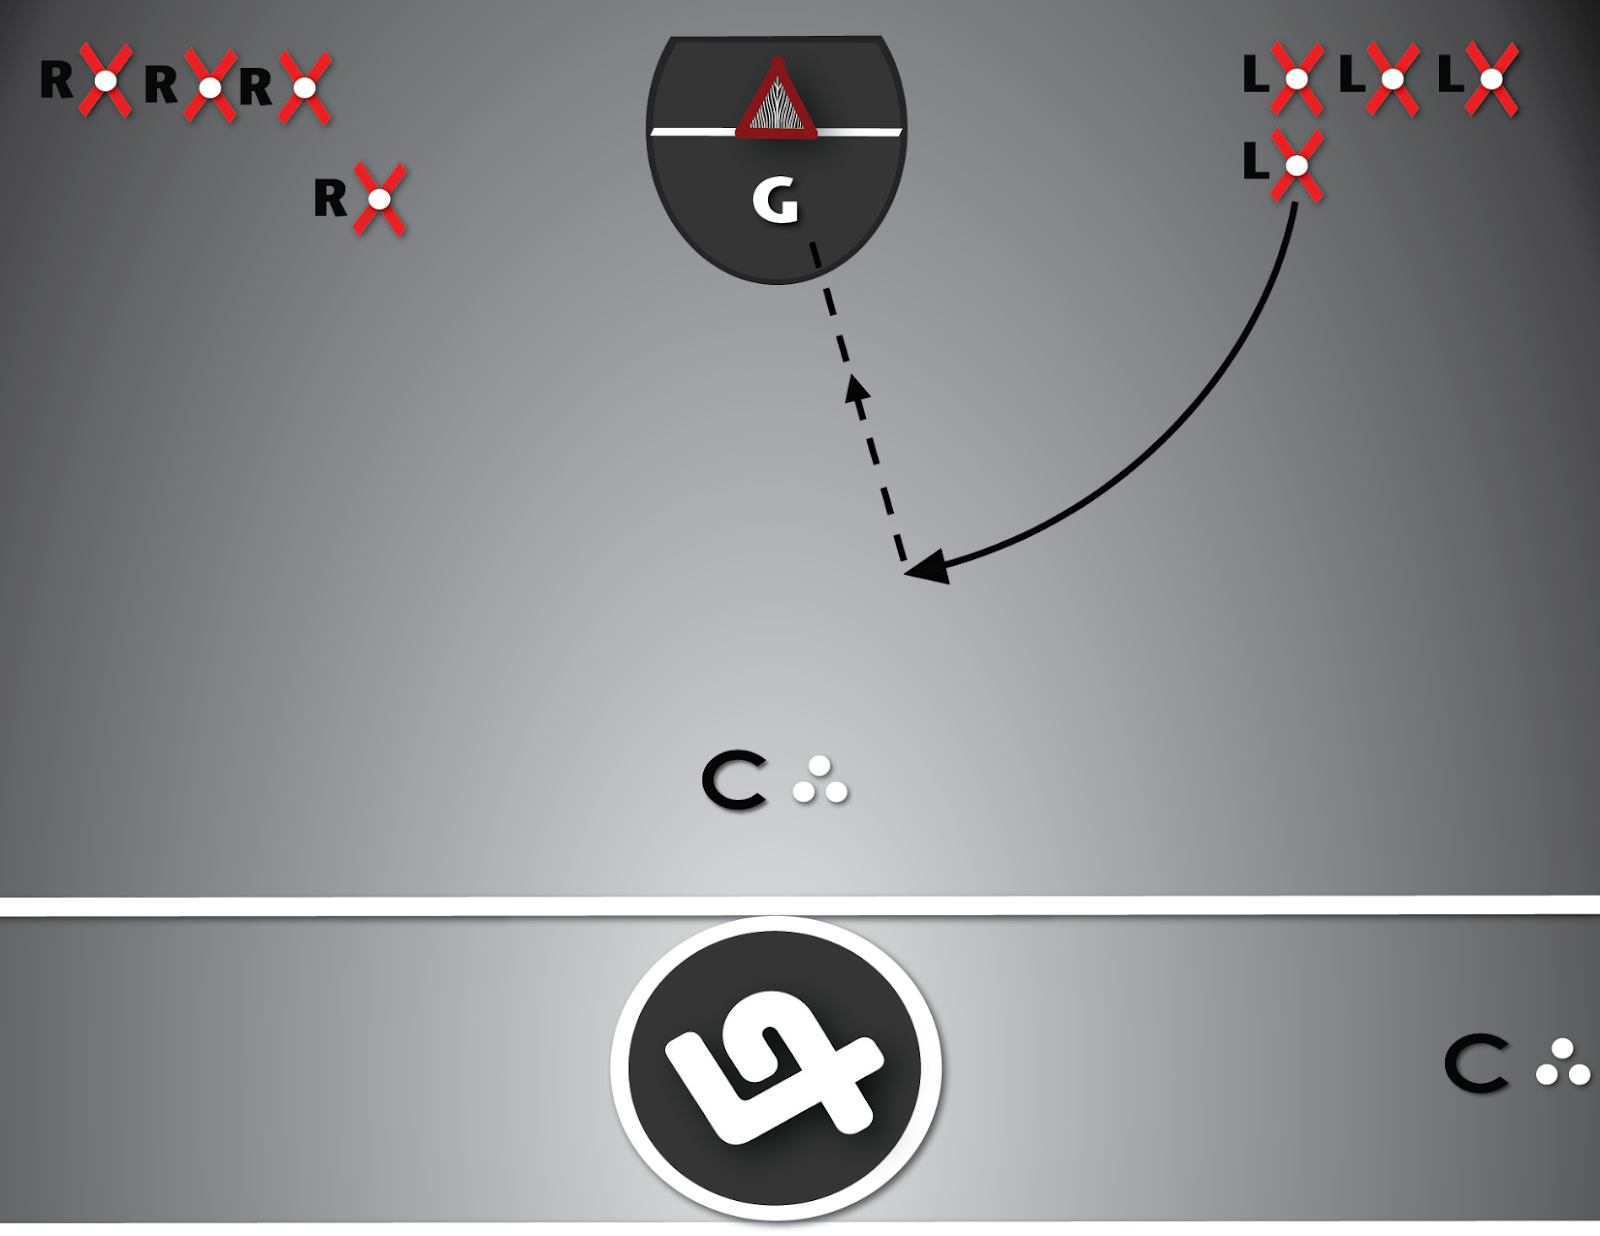 Lacrosse Shooting Drill #3 diagram, the carousel and shoot has the players go from low to high position for a set shot.